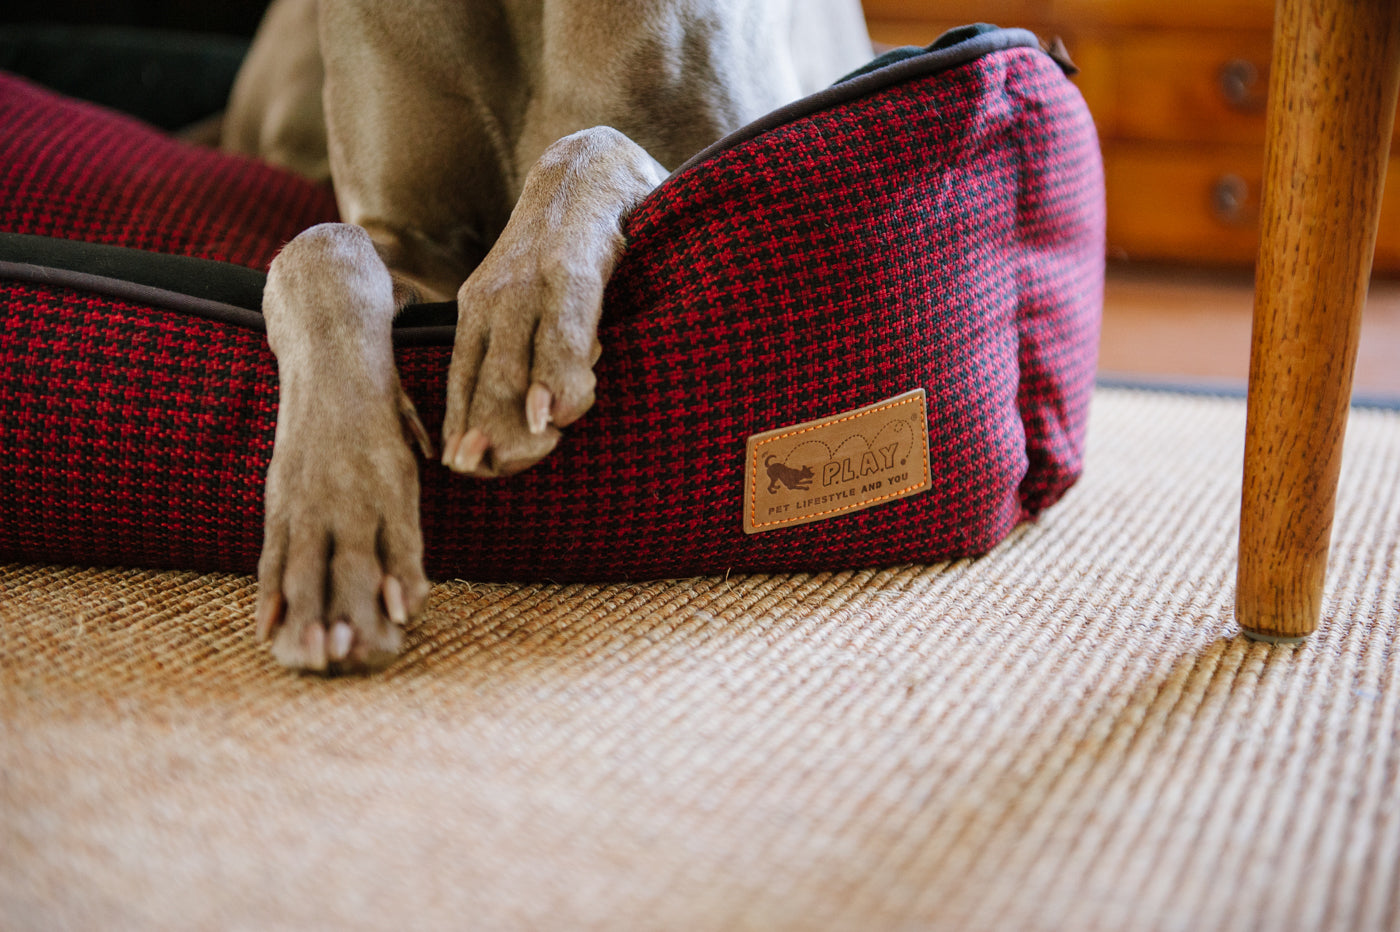 Paws of Weimaraner dog plaiced on the P.L.A.Y. Cayenne Red Hondstooth  Lounge Bed